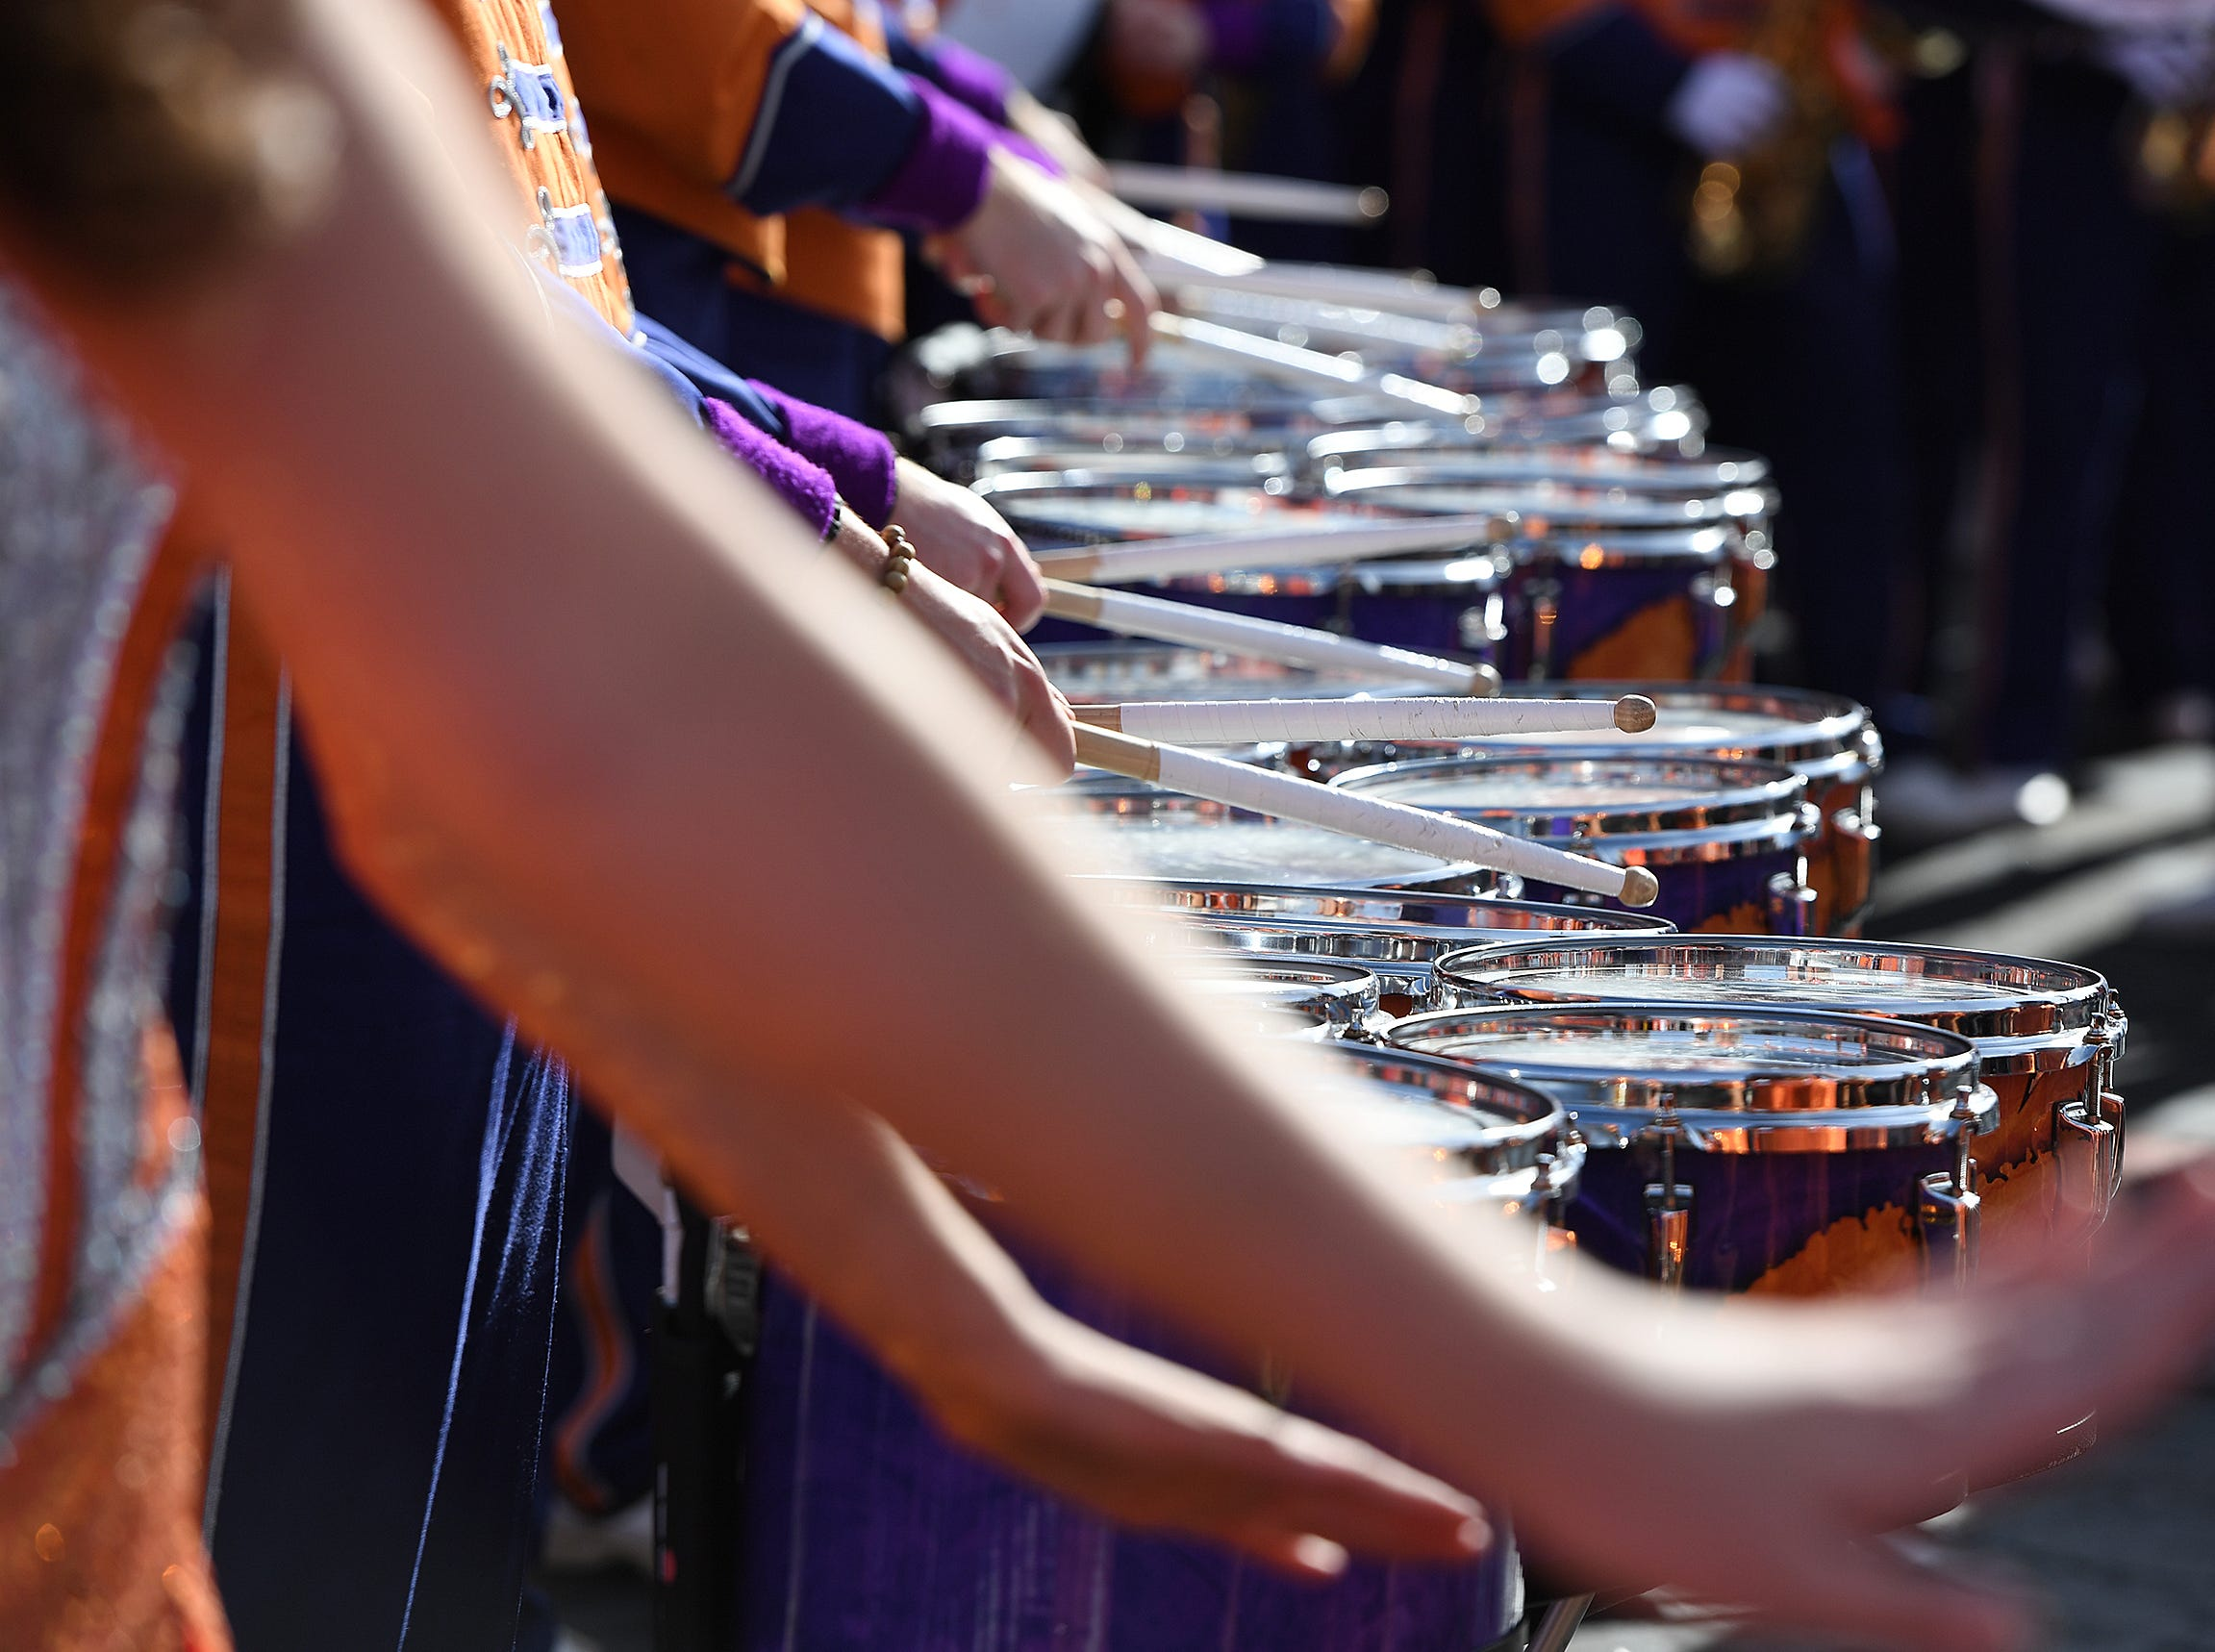 Clemson,s band plays during the College Football Championship Playoff Tailgate outside Levi's Stadium in Santa Clara, CA Monday, January 7, 2019.